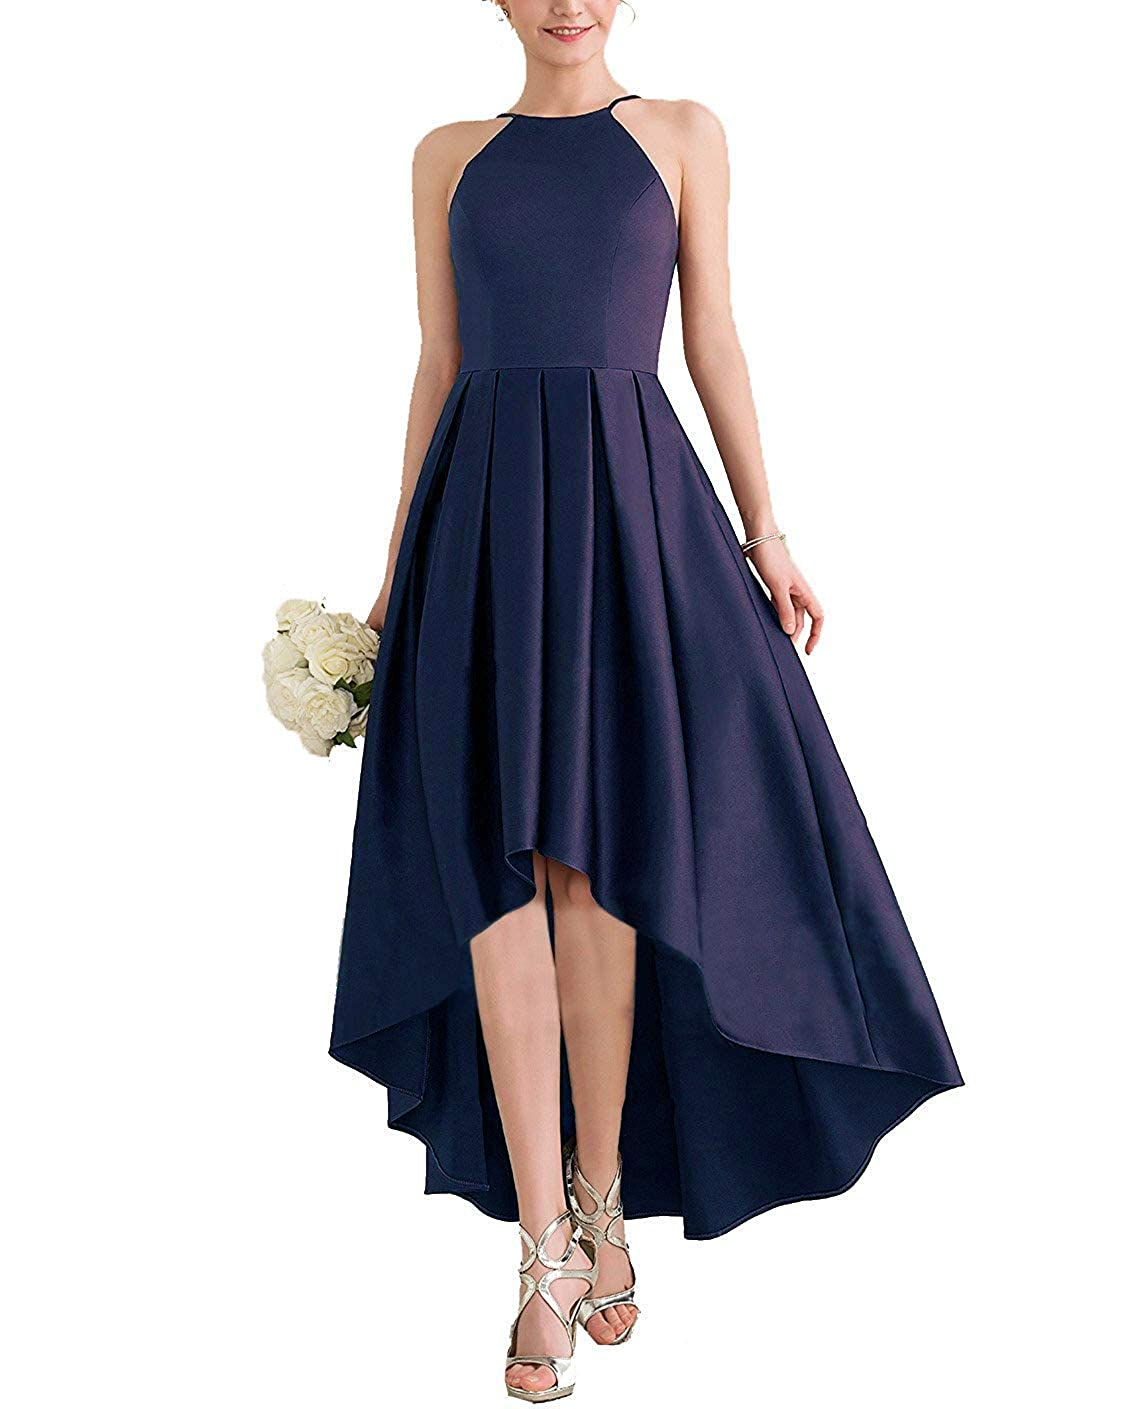 Navy bluee JINGDRESS Womens High Low Satin Bridesmaid Dress High Neck Sleeveless A Line Pleated Prom Gowns